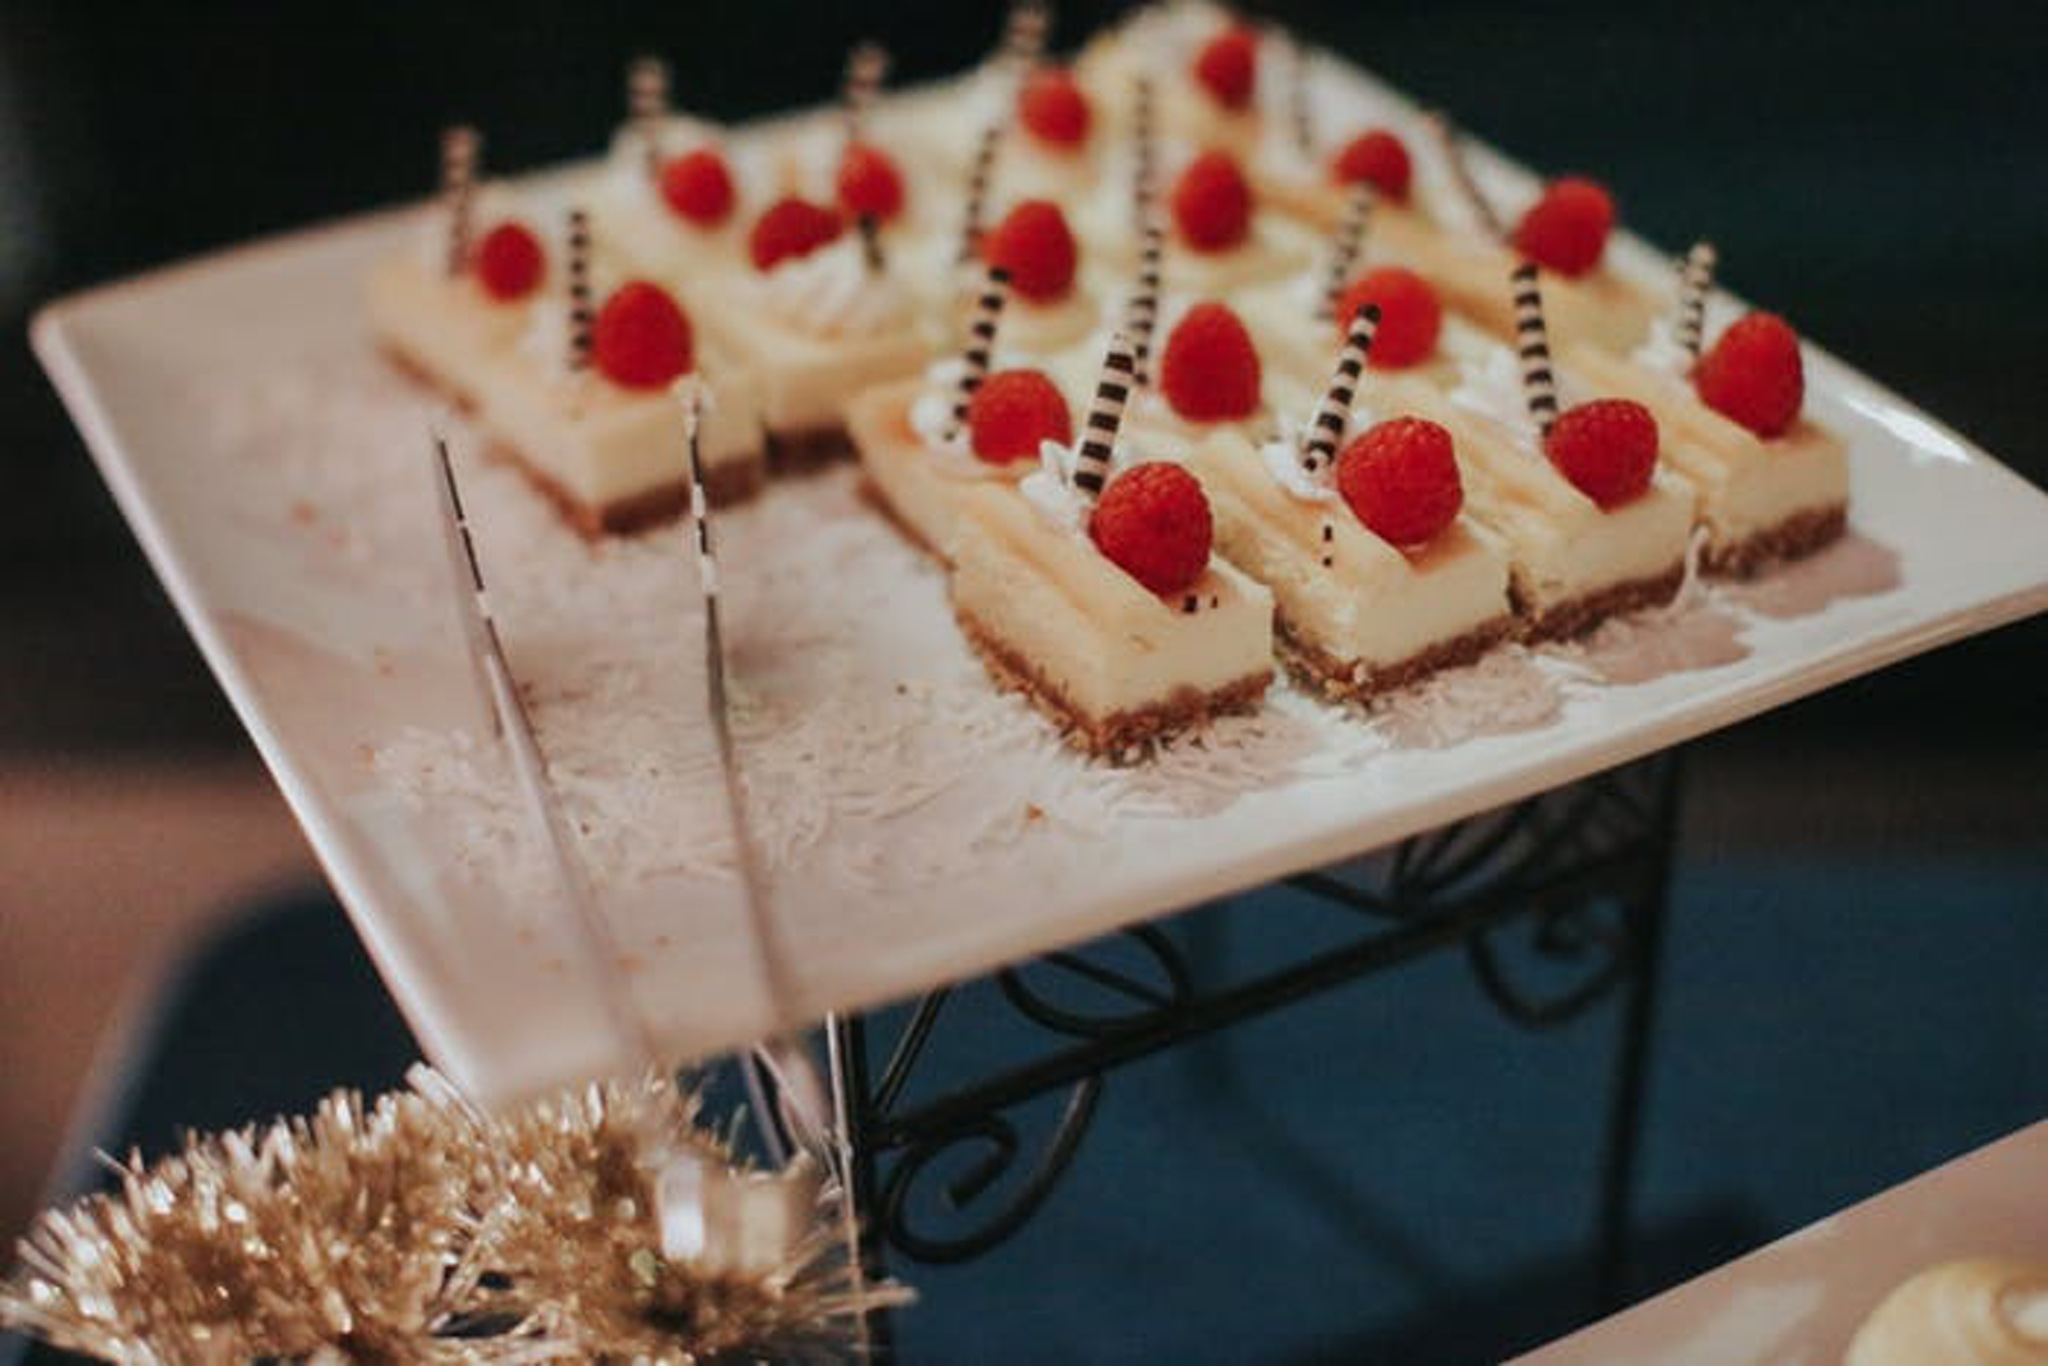 desserts topped with raspberries